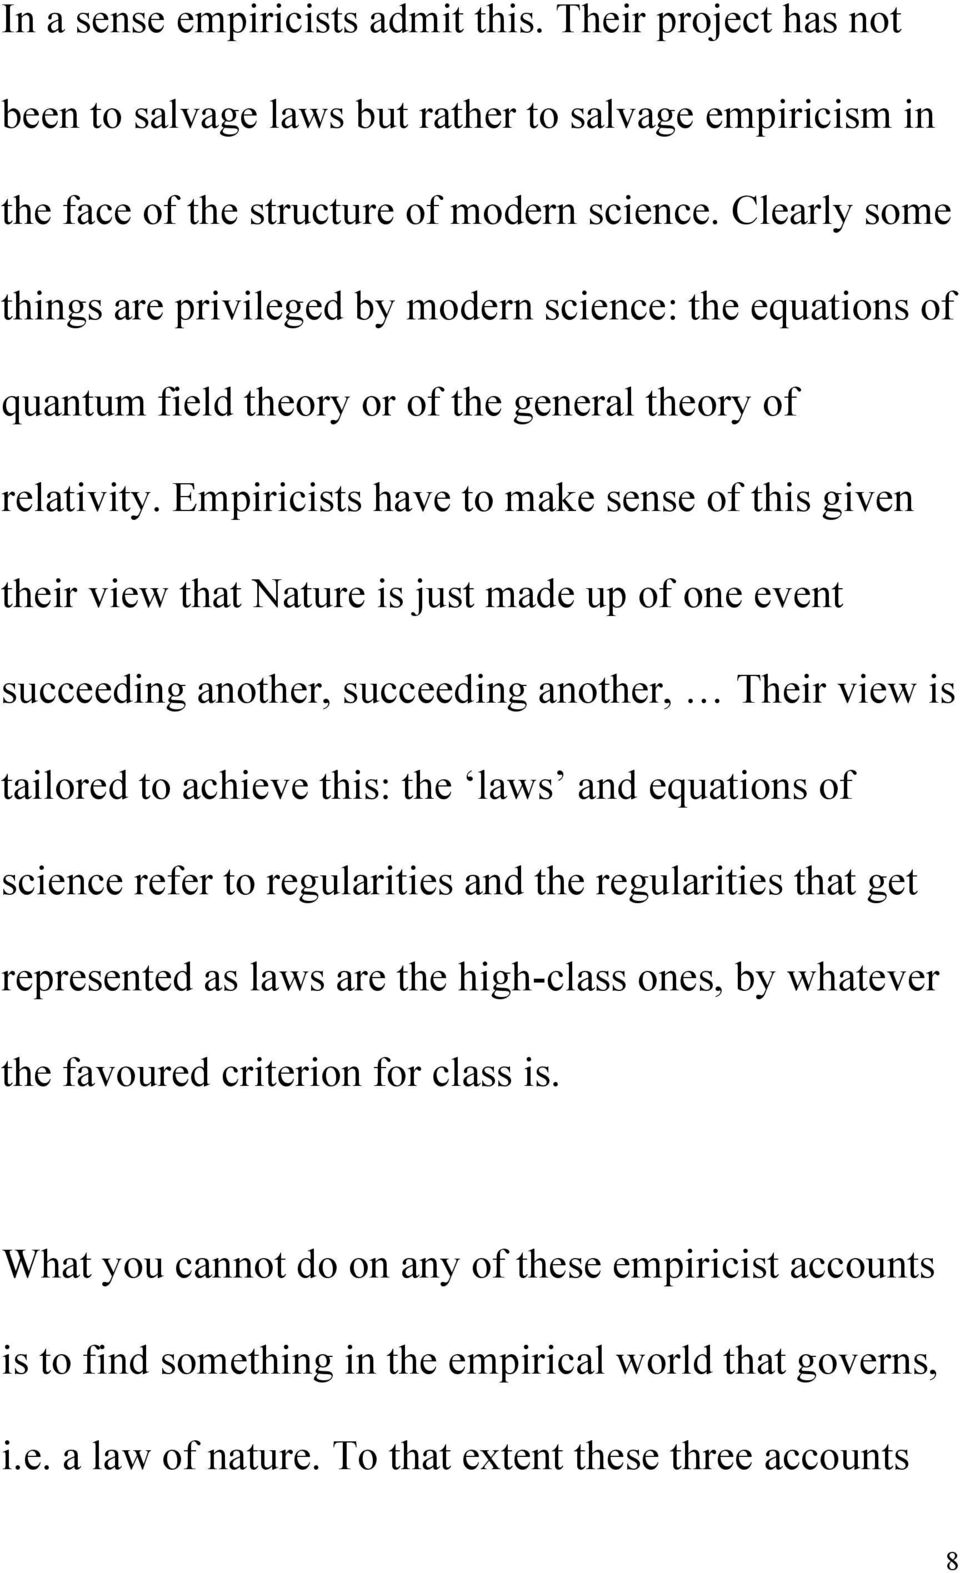 Empiricists have to make sense of this given their view that Nature is just made up of one event succeeding another, succeeding another, Their view is tailored to achieve this: the laws and equations